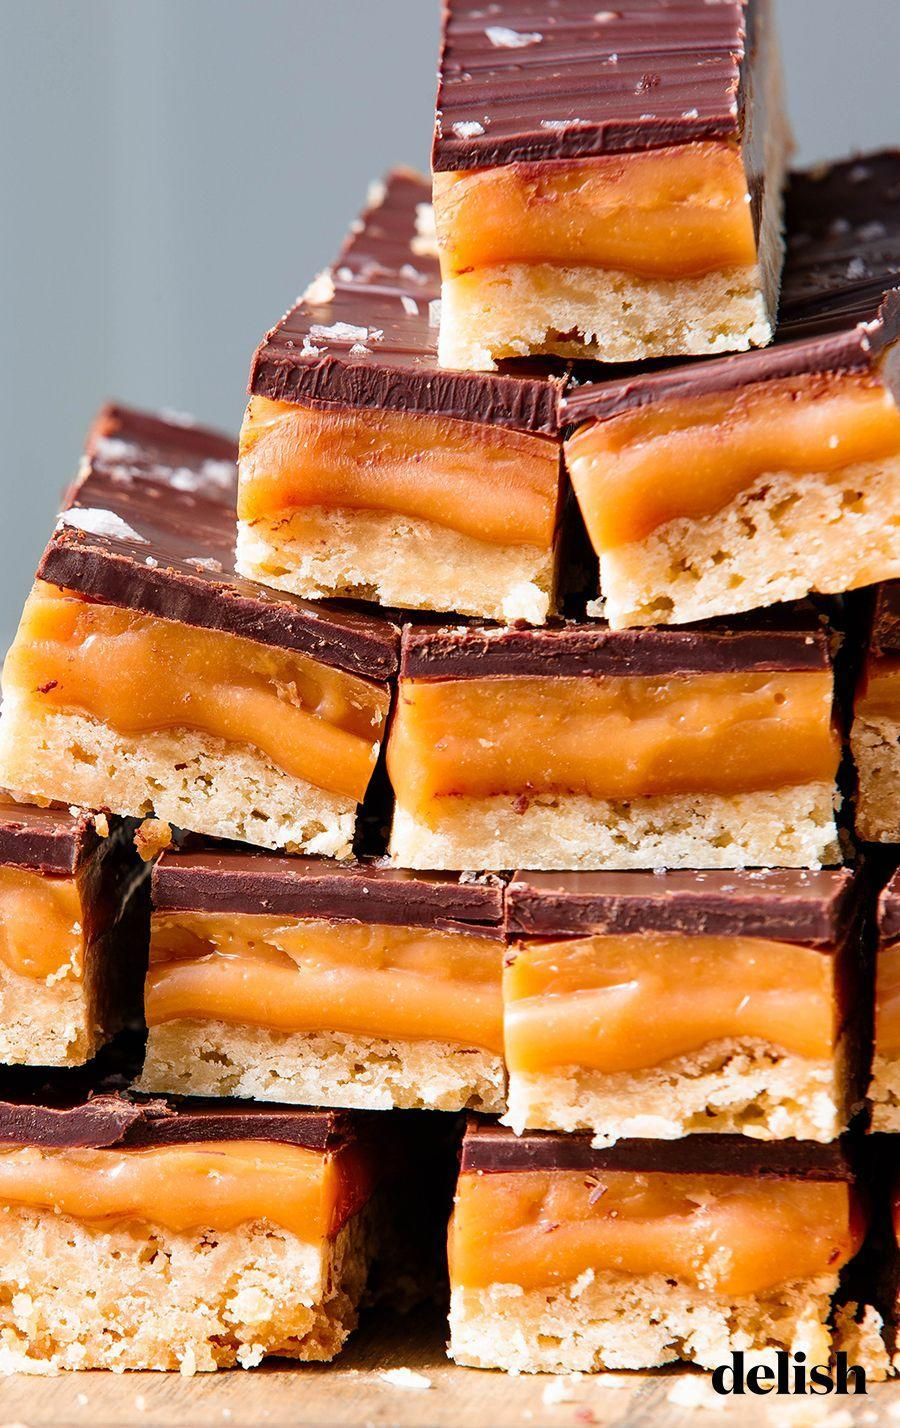 """<p>Treat your friends like a million bucks and gift them these sweet bars. </p><p>Get the recipe from <a href=""""https://www.delish.com/cooking/a25781497/millionaire-shortbread-recipe/"""" rel=""""nofollow noopener"""" target=""""_blank"""" data-ylk=""""slk:Delish"""" class=""""link rapid-noclick-resp"""">Delish</a>. </p>"""